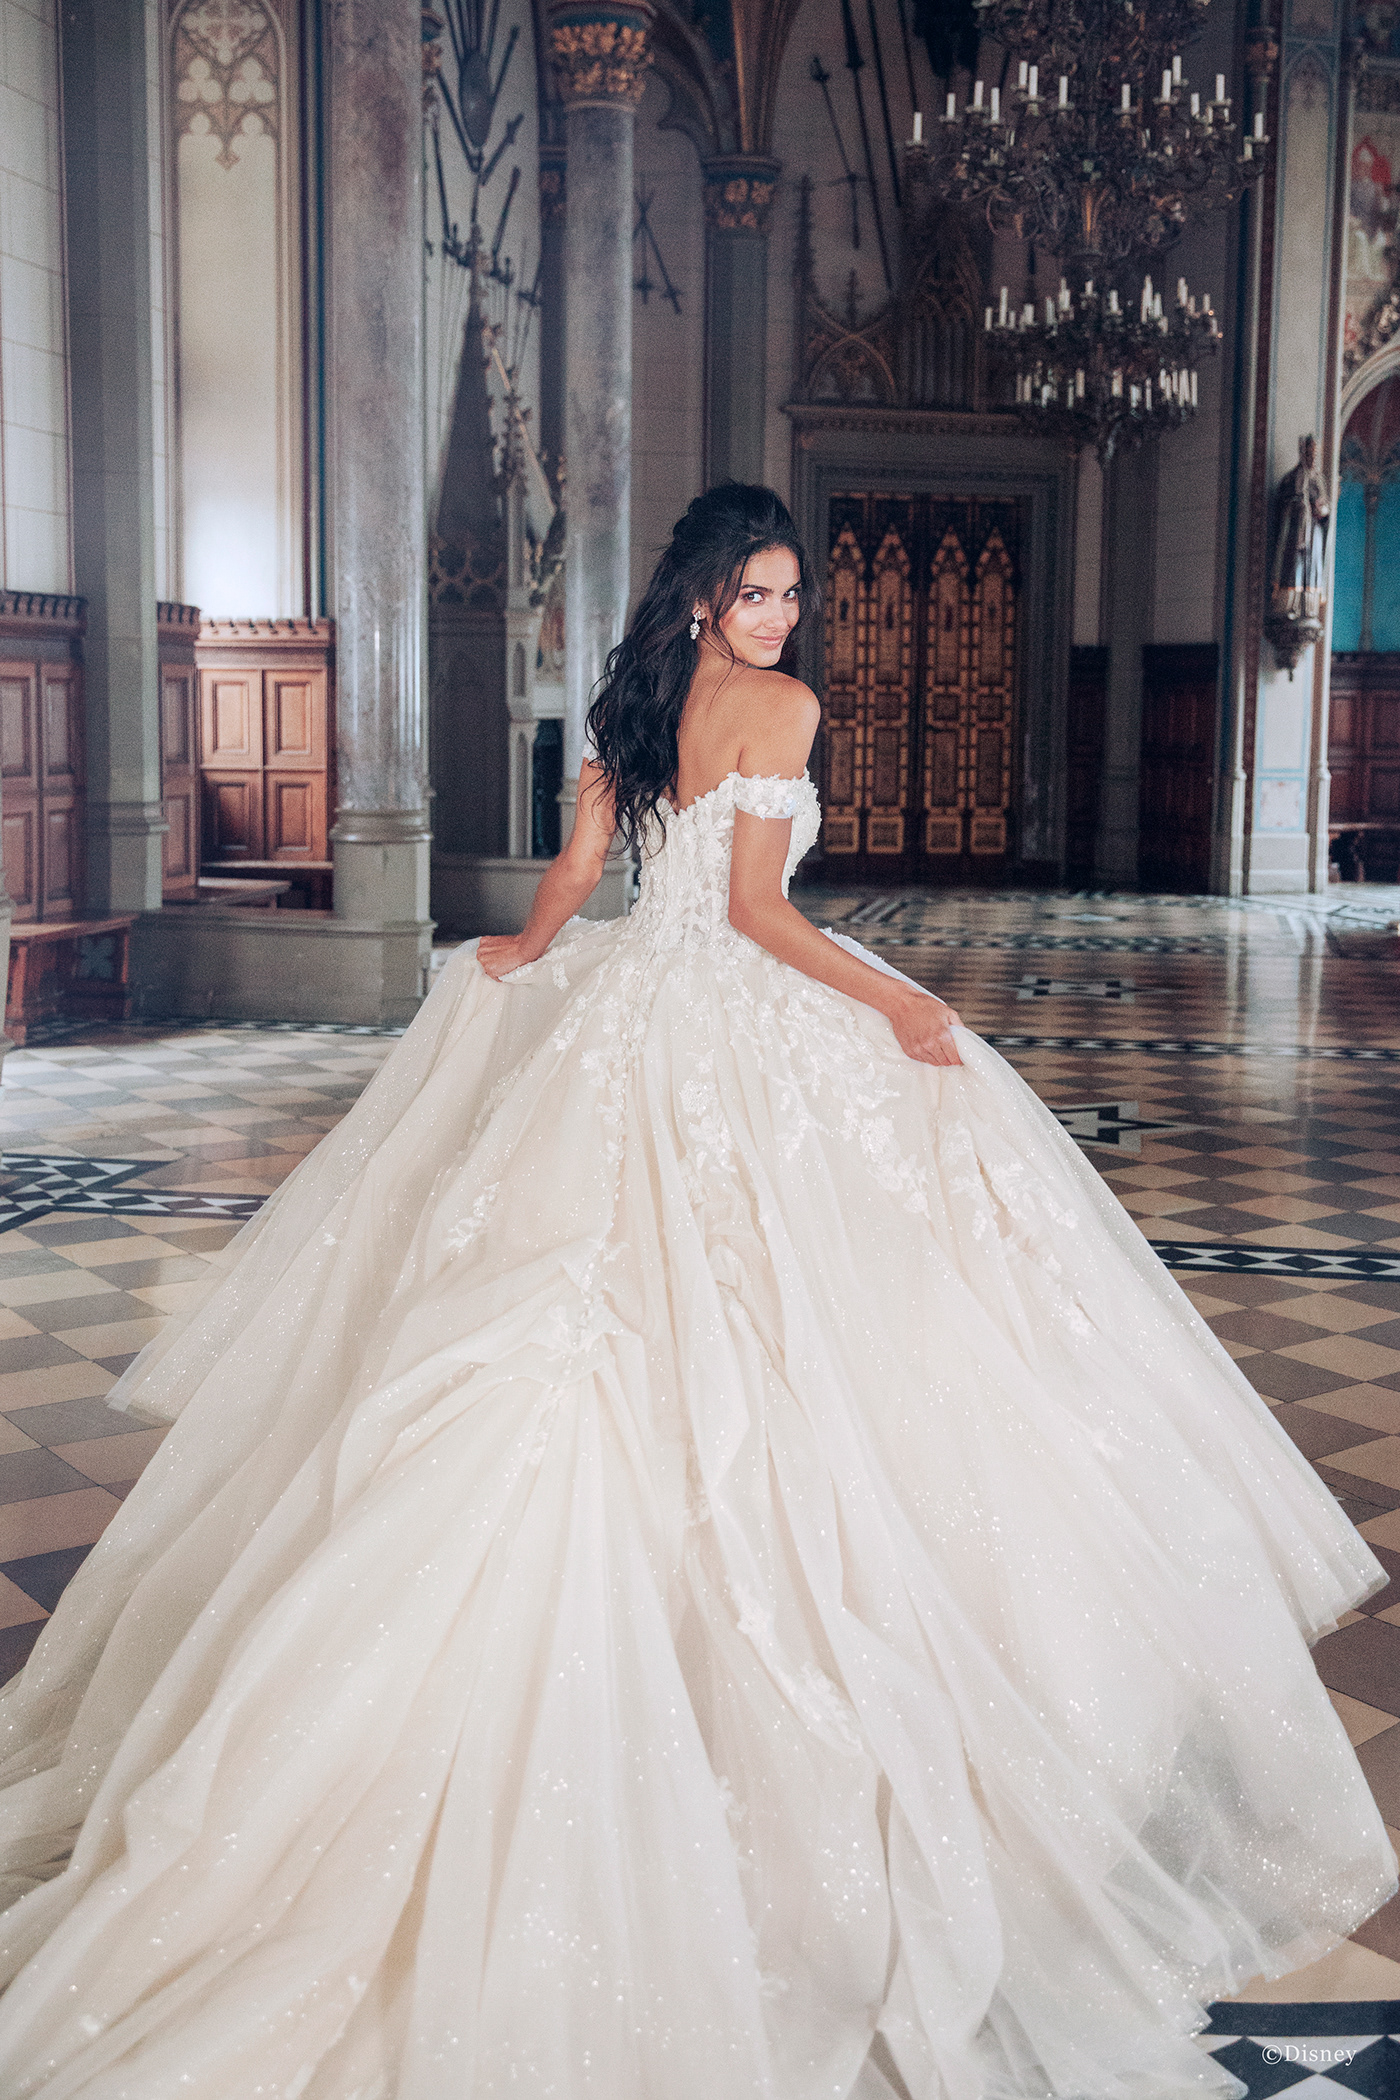 Image may contain: wedding dress, clothing and bride